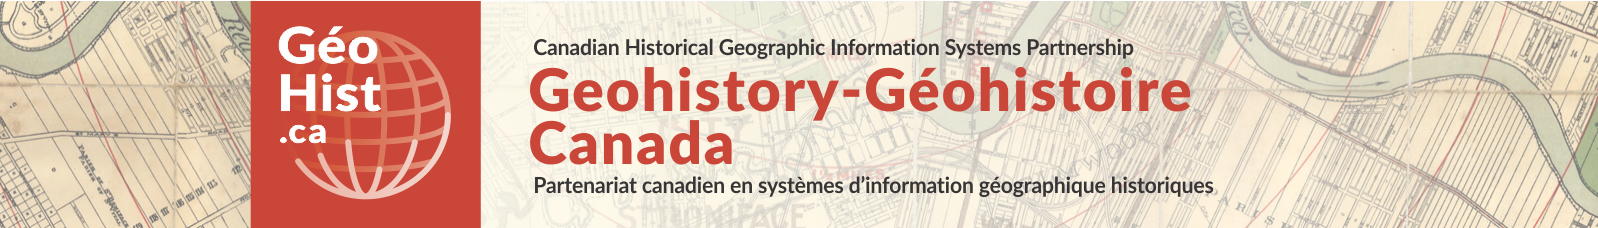 Canadian Historical Geographic Information Systems